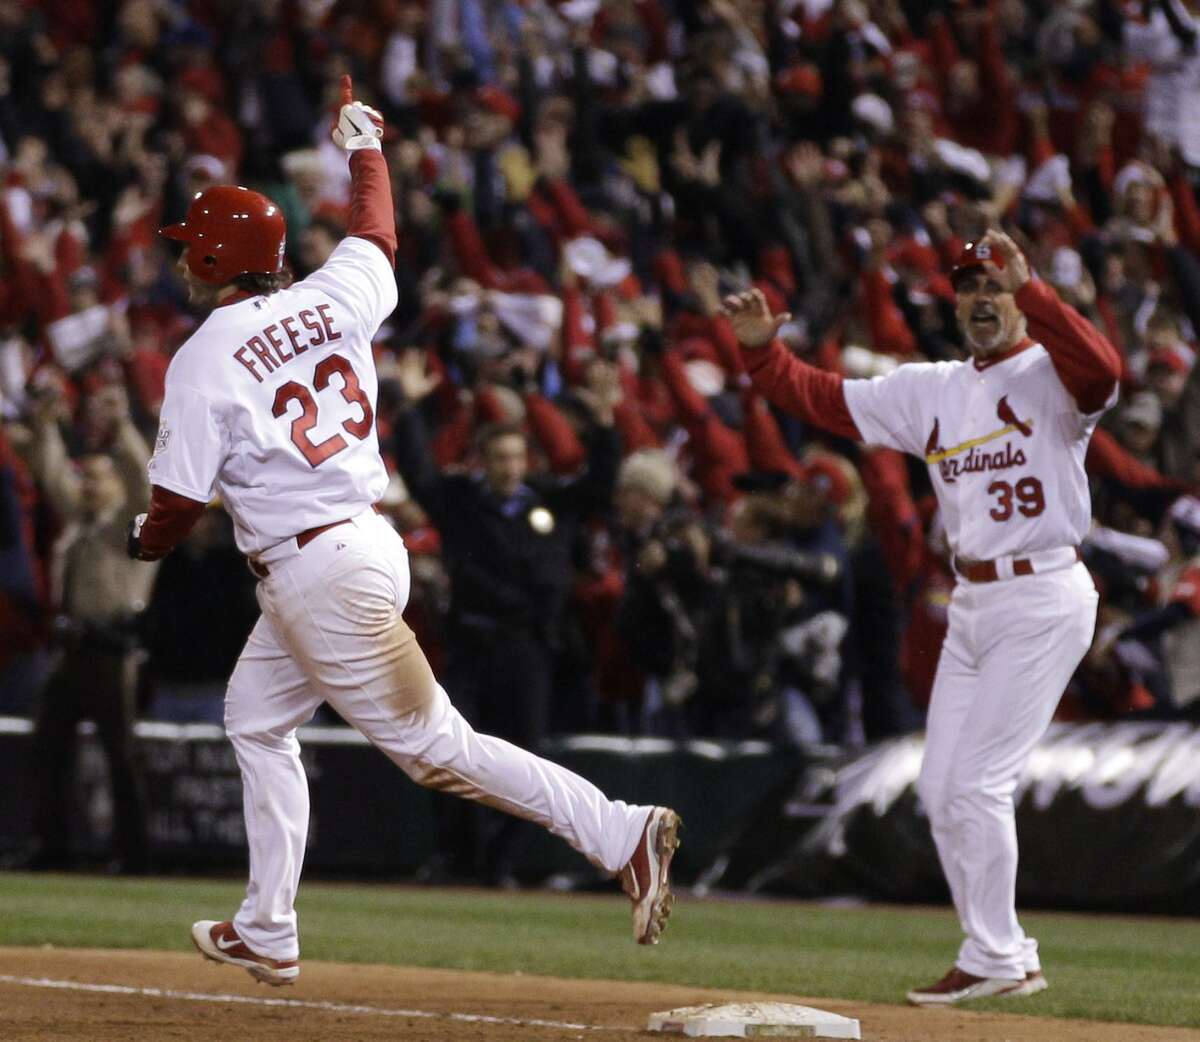 St. Louis Cardinals' David Freese (23) reacts after hitting a walk-off home run during the 11th inning of Game 6 of baseball's World Series against the Texas Rangers Thursday, Oct. 27, 2011, in St. Louis. The Cardinals won the game 10-9 to tie the series 3-3. (AP Photo/Matt Slocum)